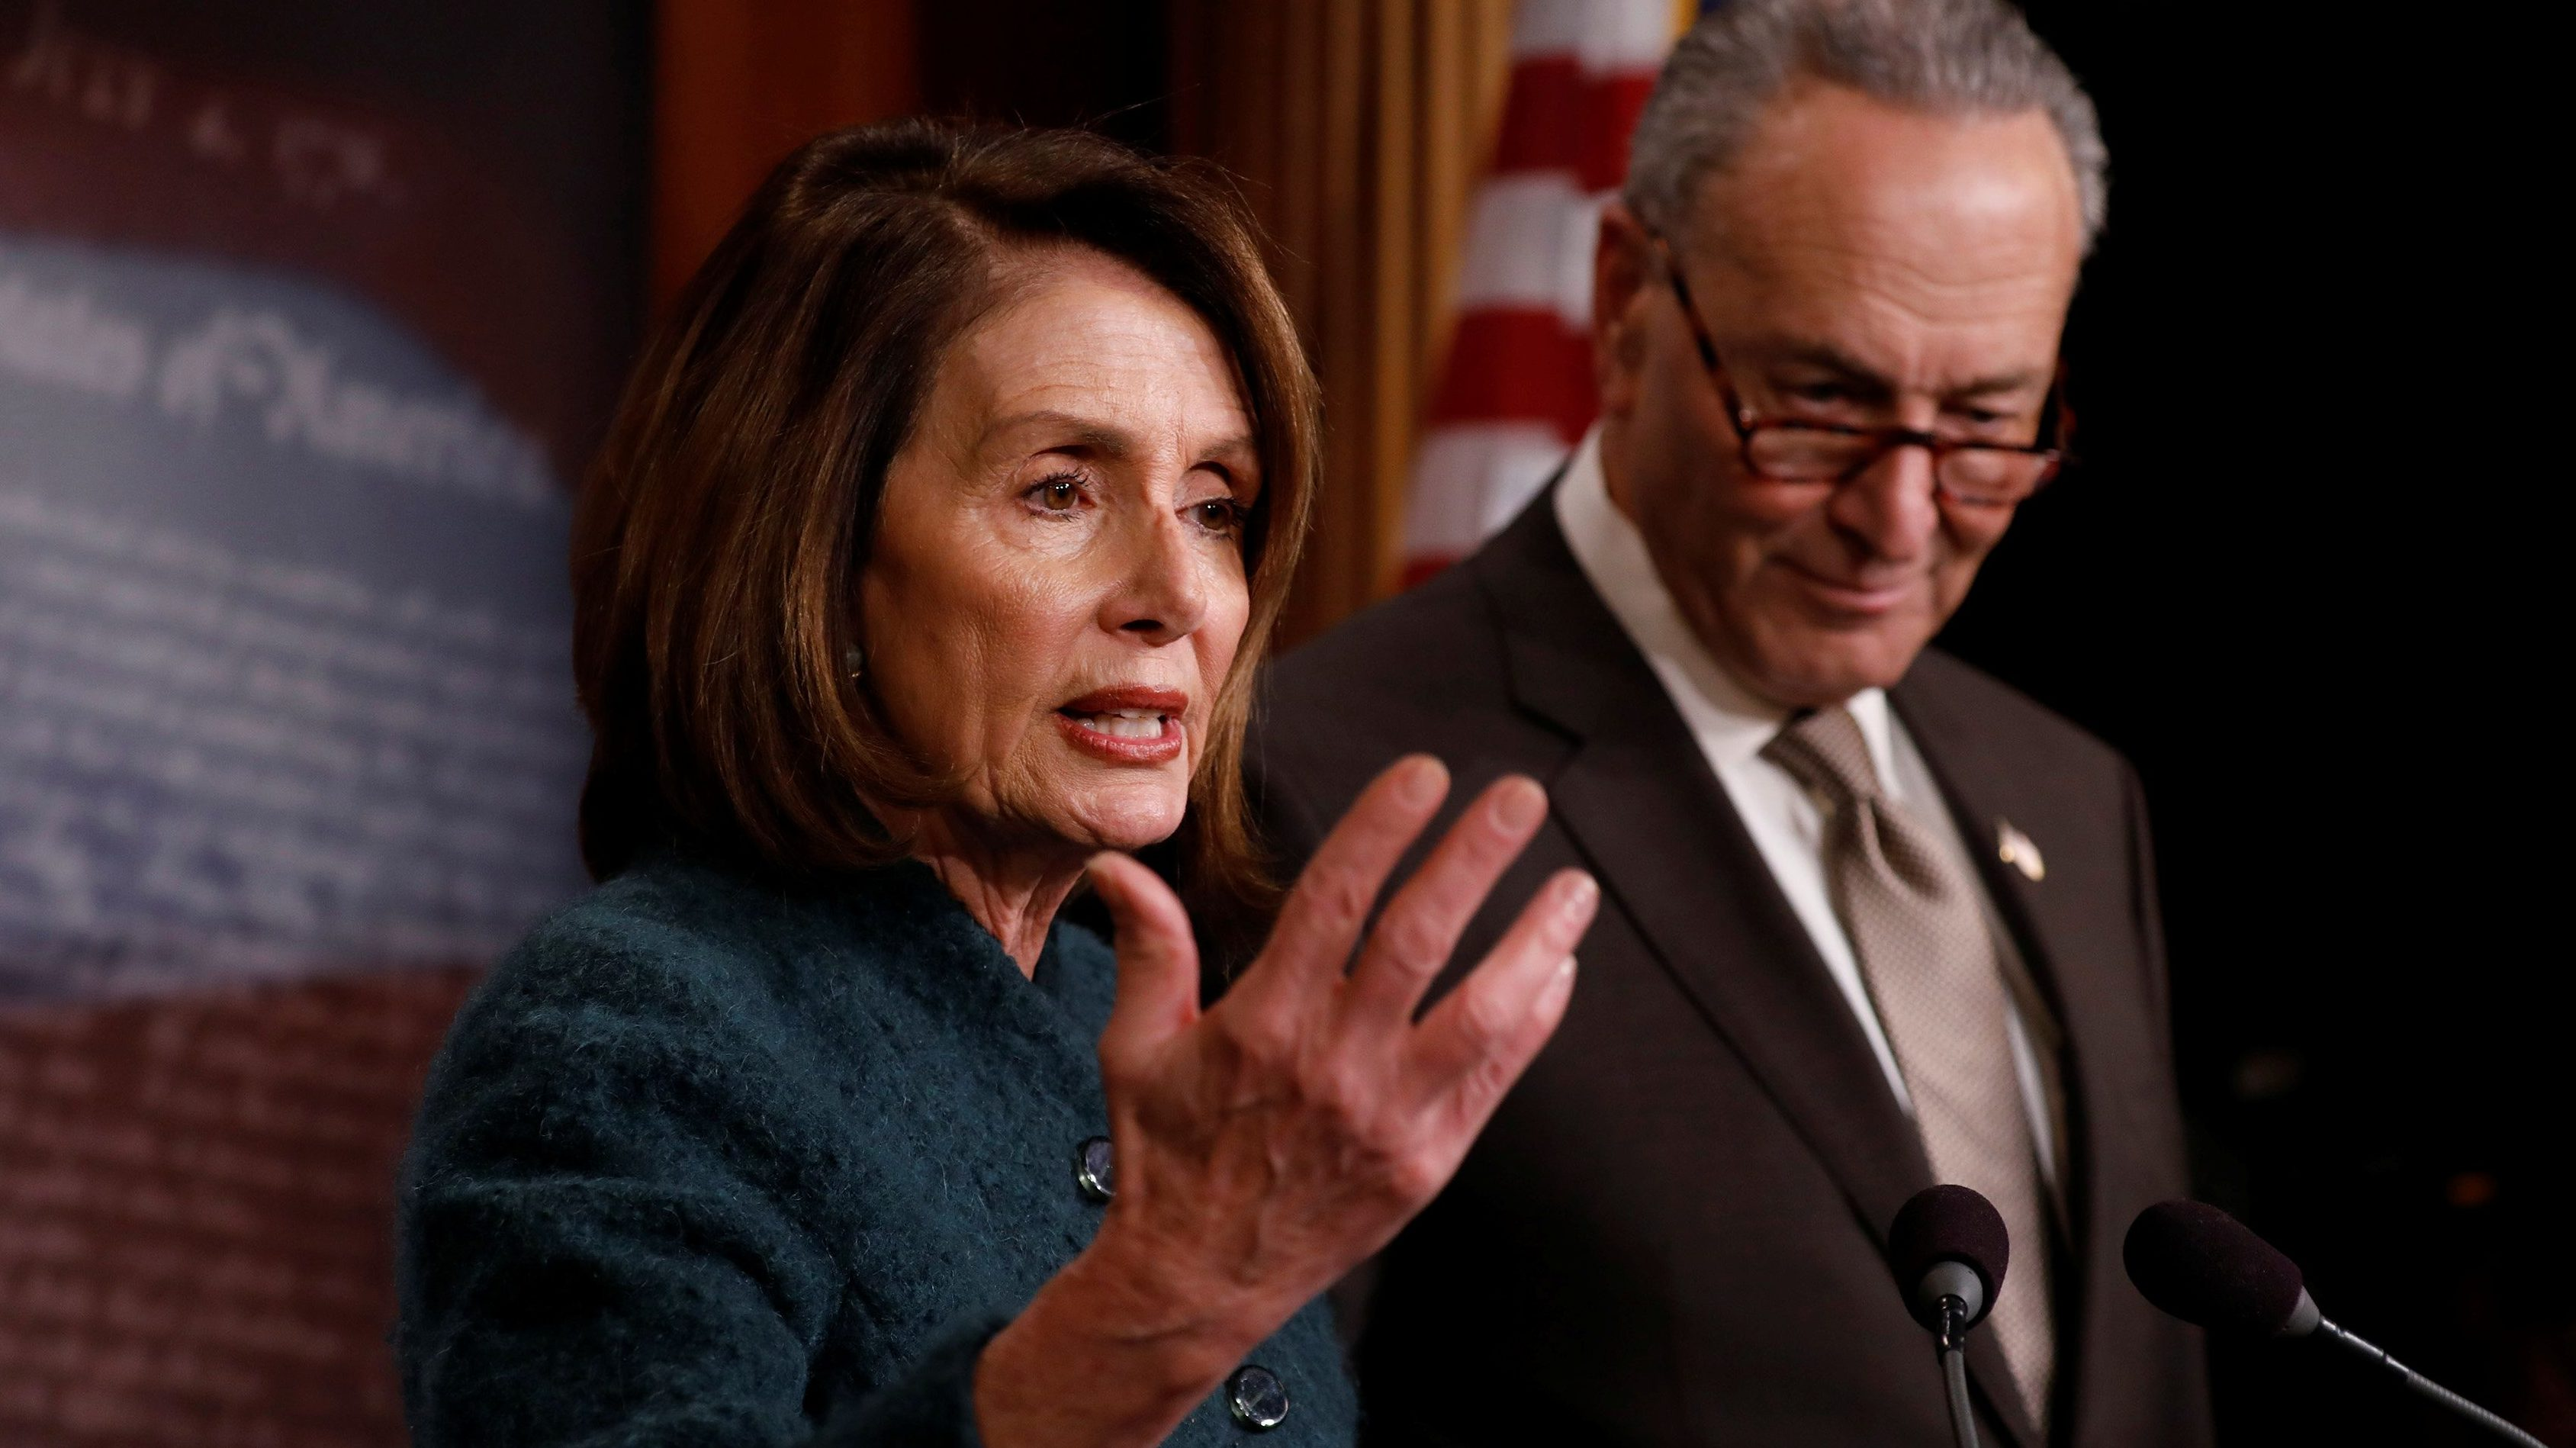 I Hope Democrats Get It Together Before >> The Democrats Slogan For The 2018 Midterm Elections Is A Dud Quartz